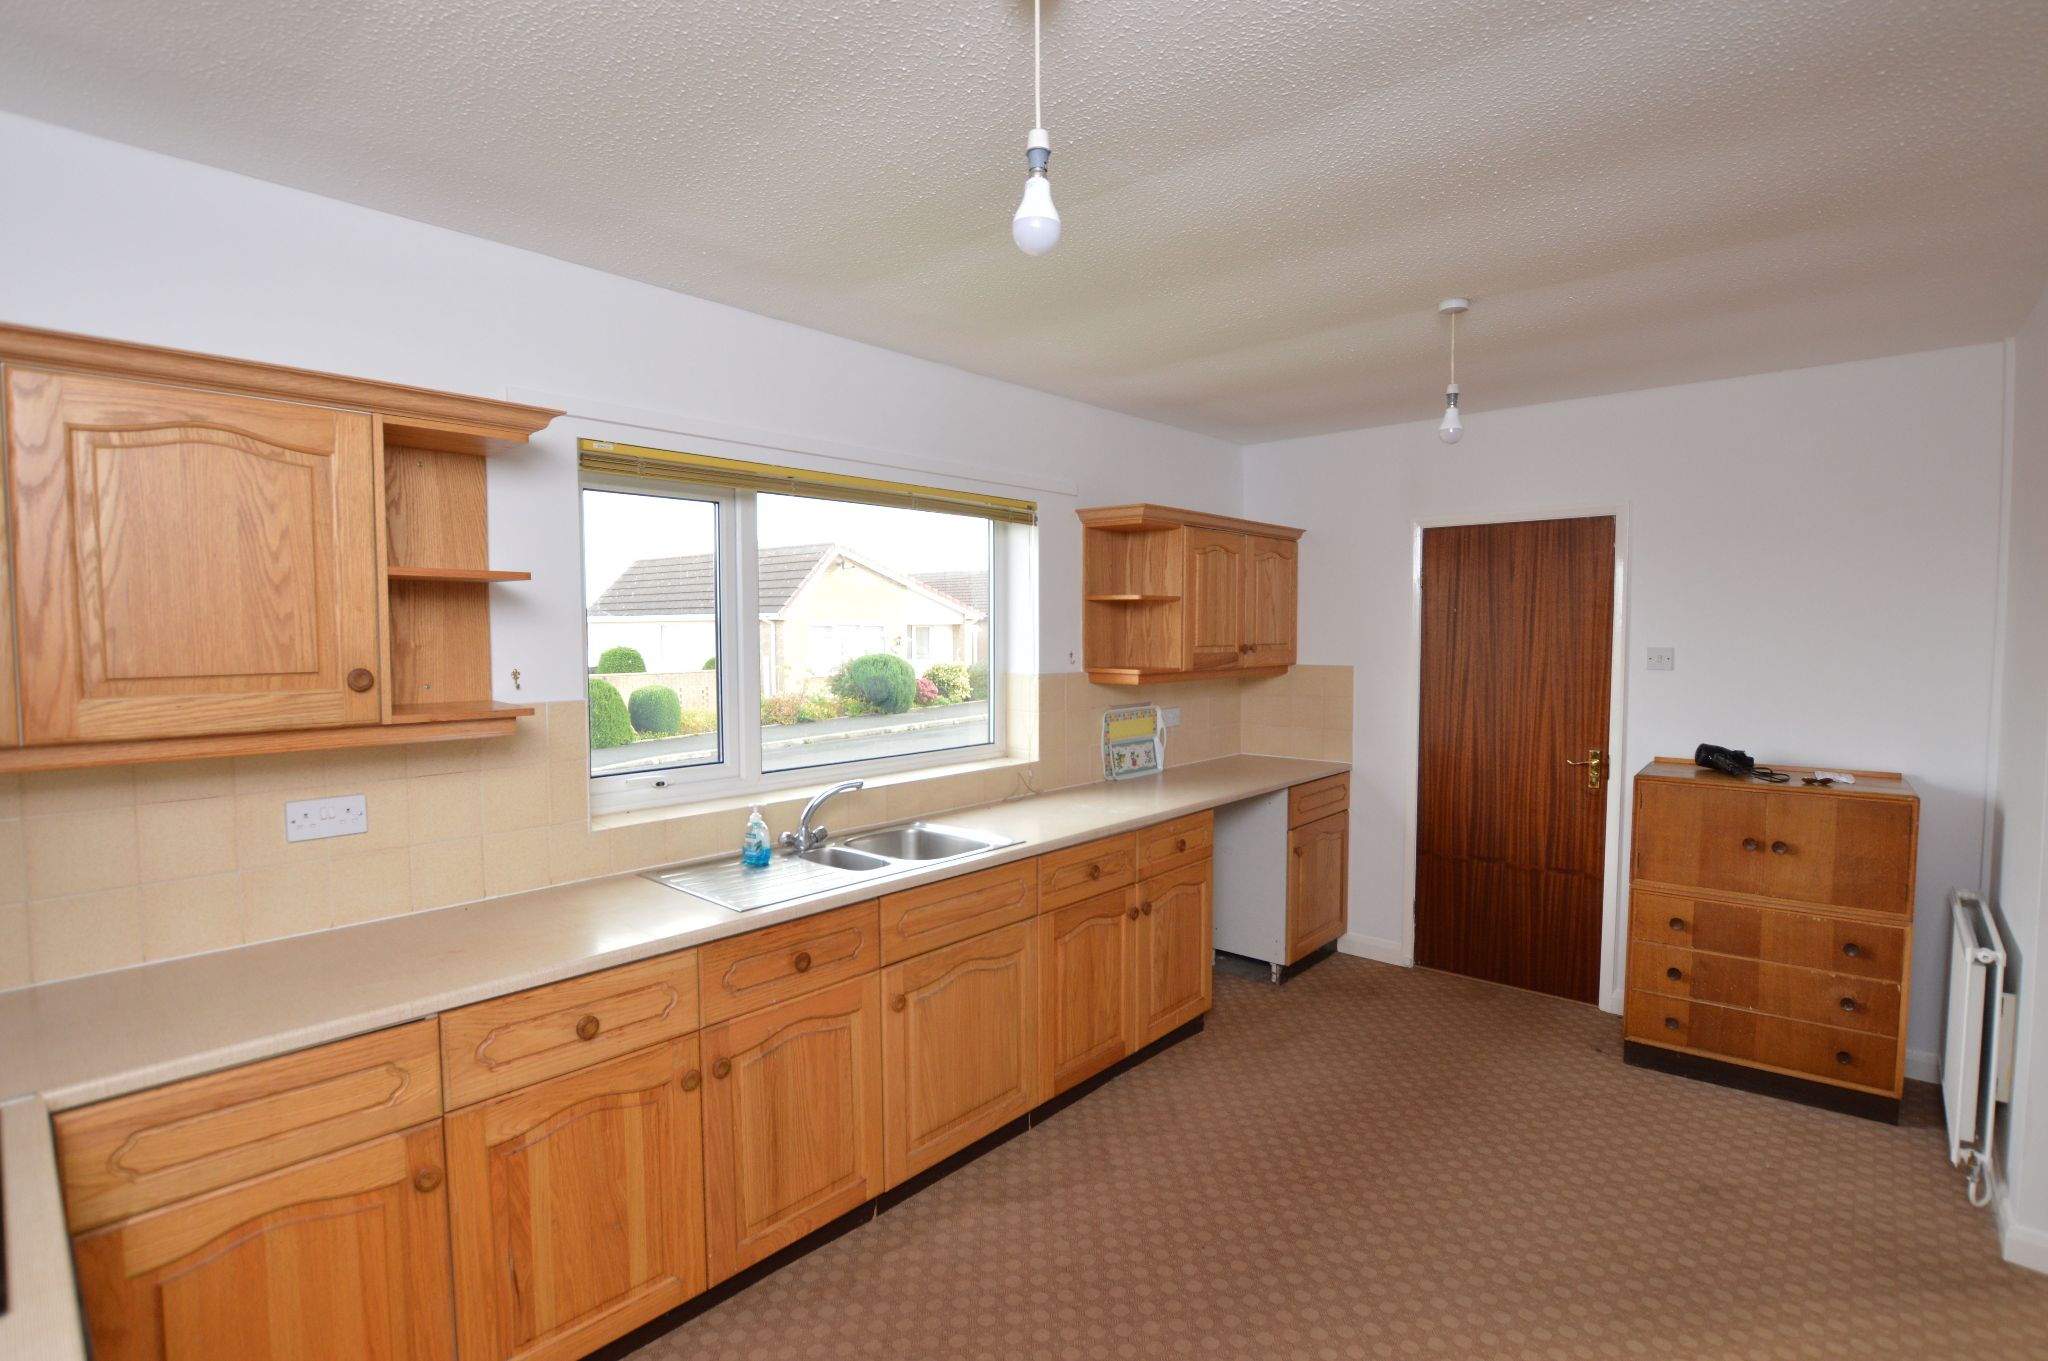 2 bedroom detached bungalow Under Offer in Abergele - Kitchen